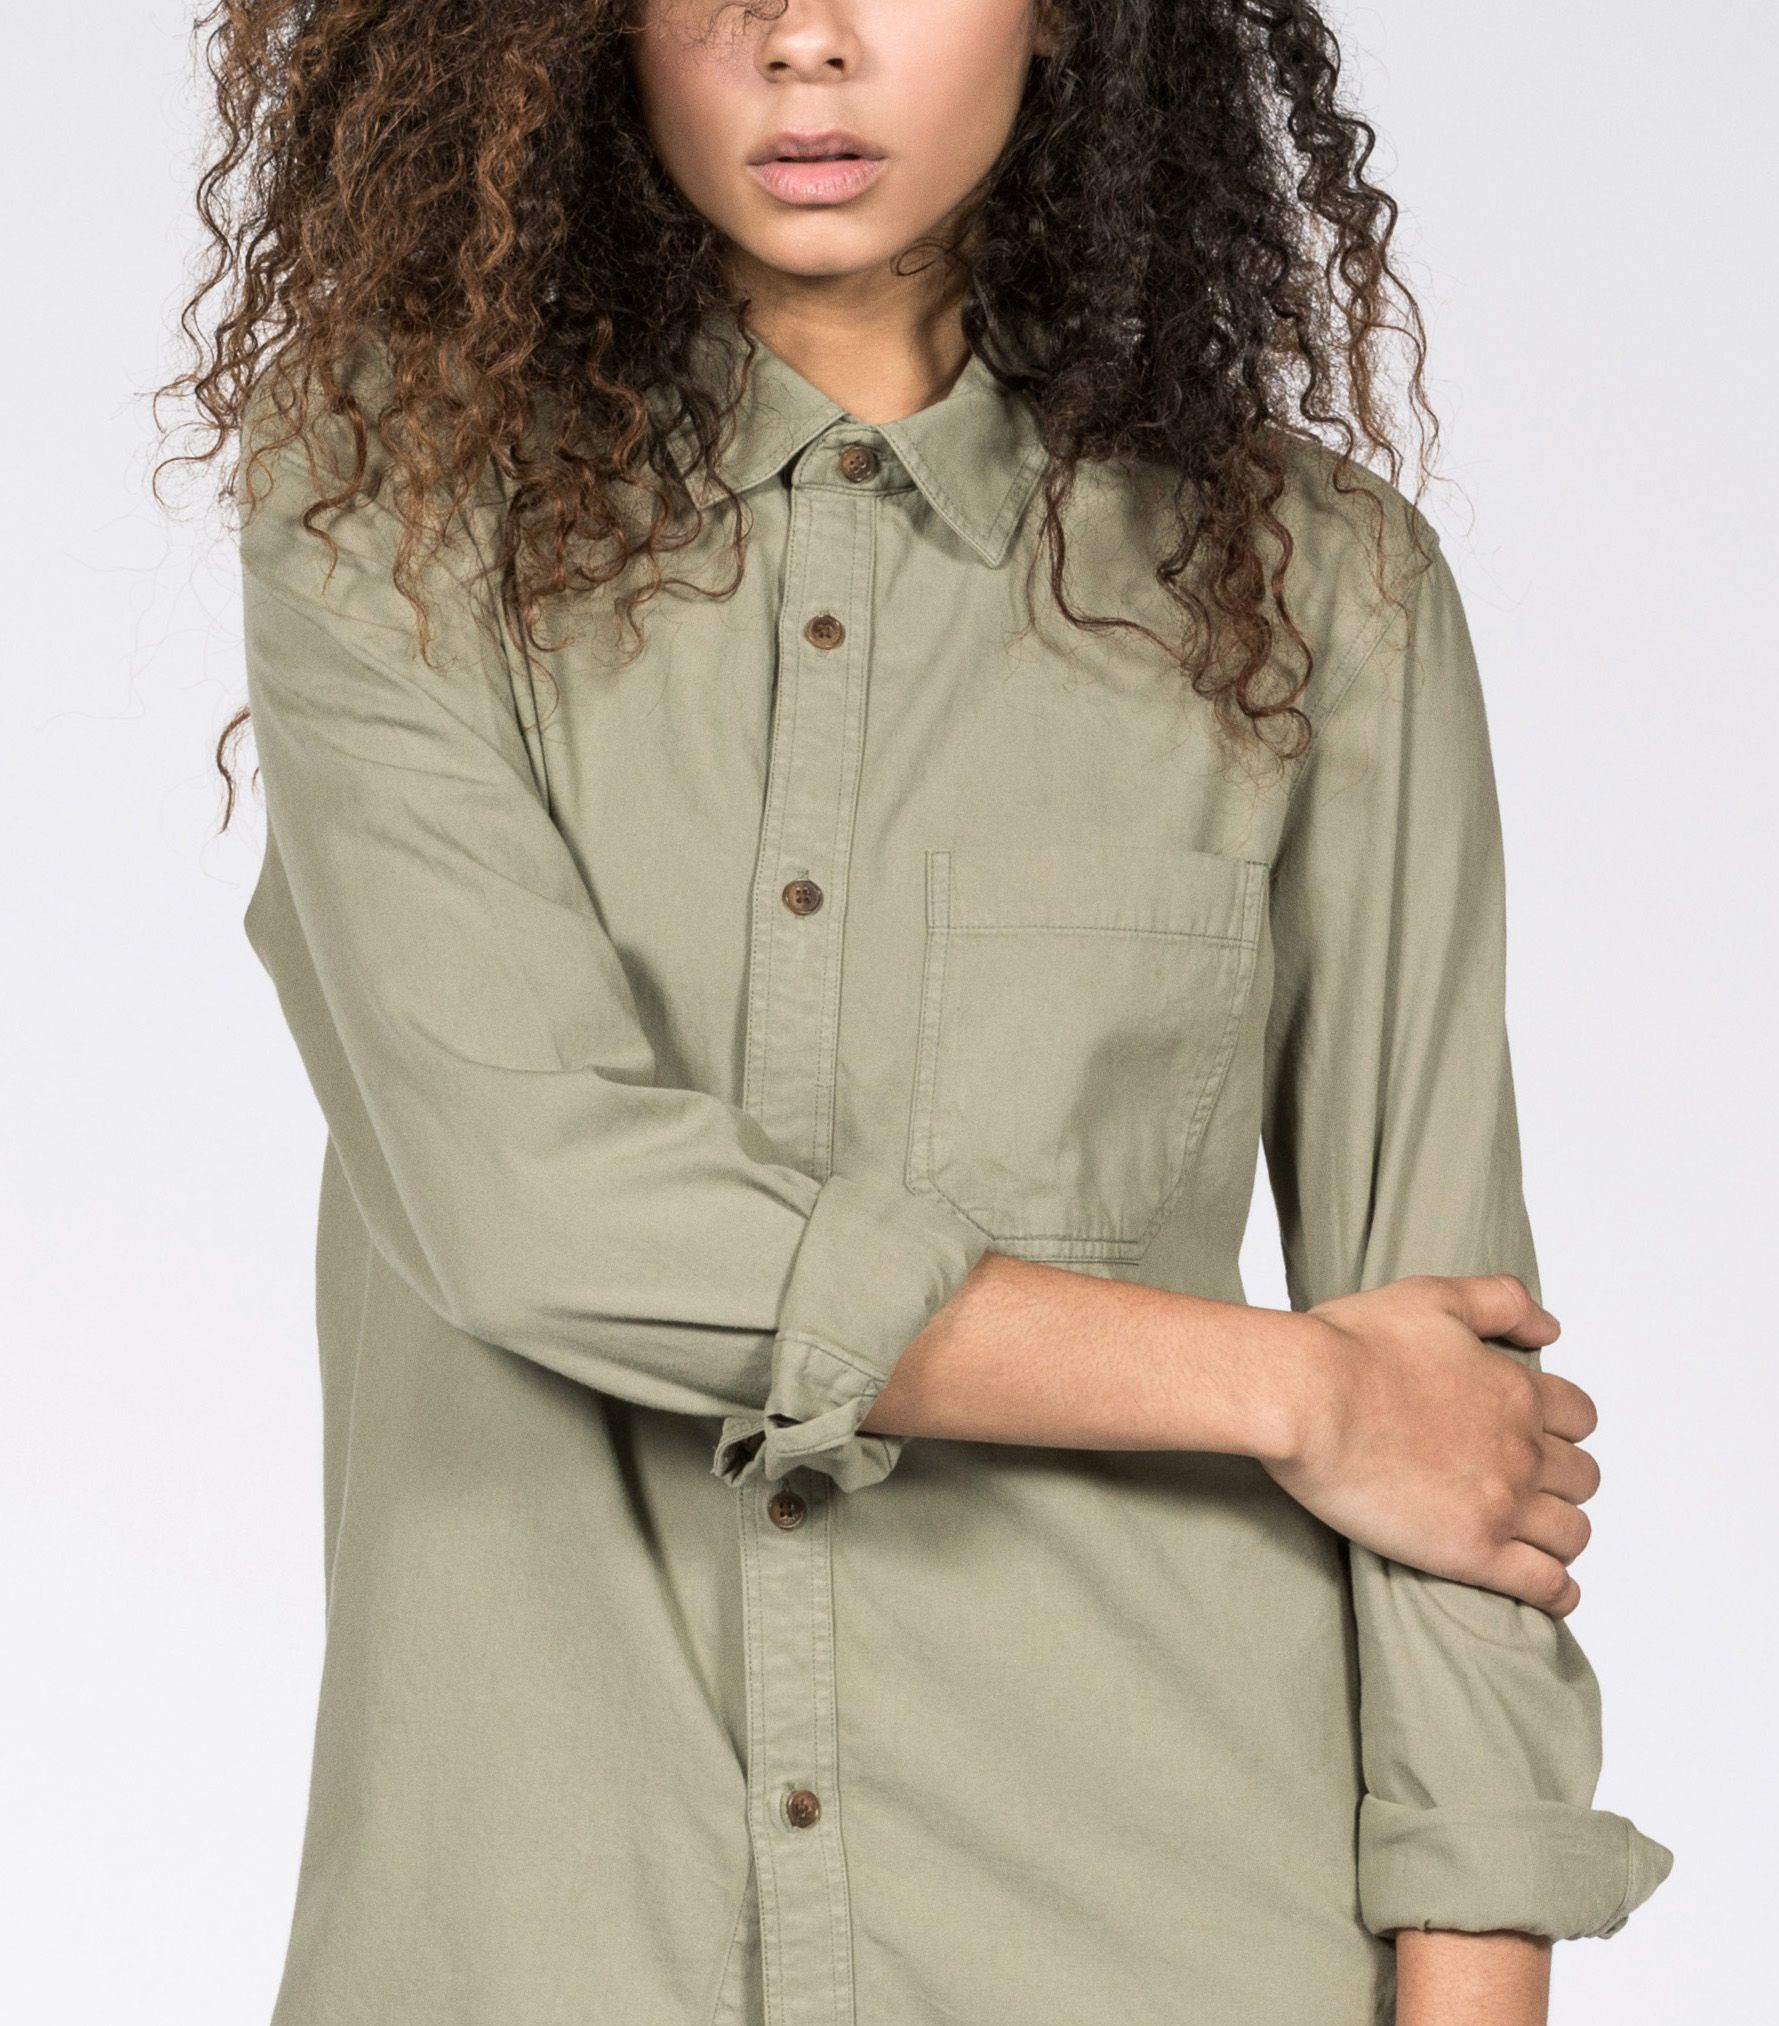 In washed and faded fabric, this slouchy shirt has rad vintage utilitarian style.